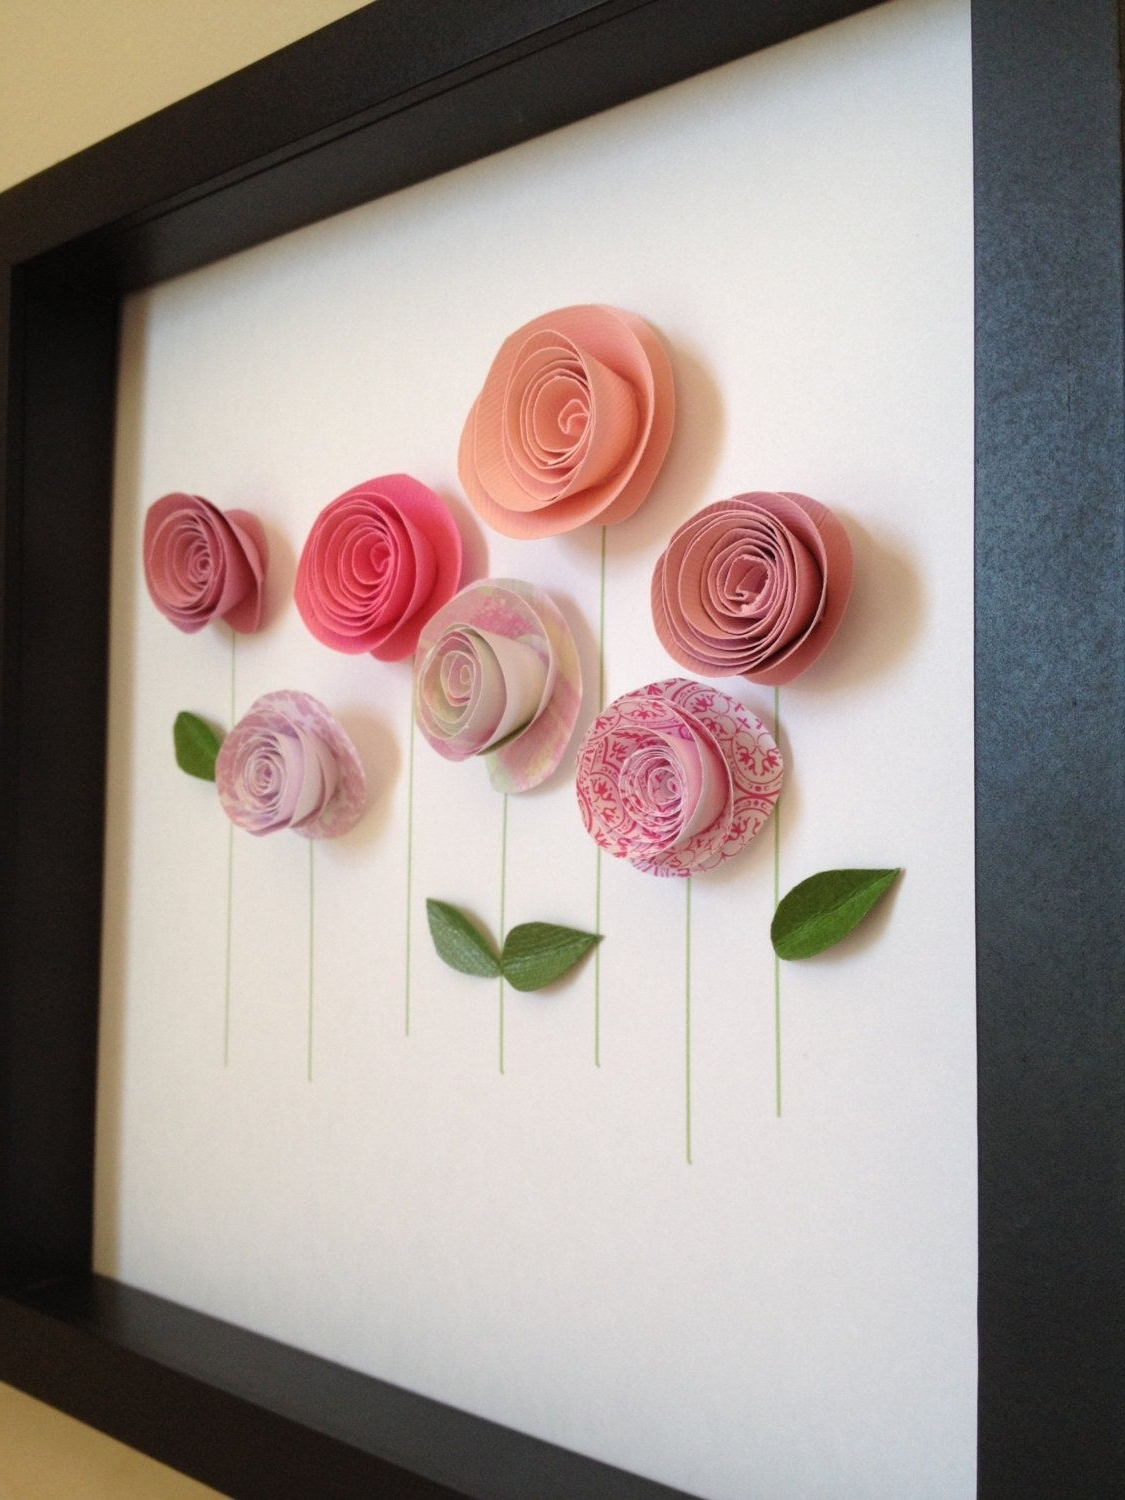 Well Known 3D Garden Wall Art With Pink Rose Garden, 3D Paper Art, Customize With Your Colors And (View 15 of 15)